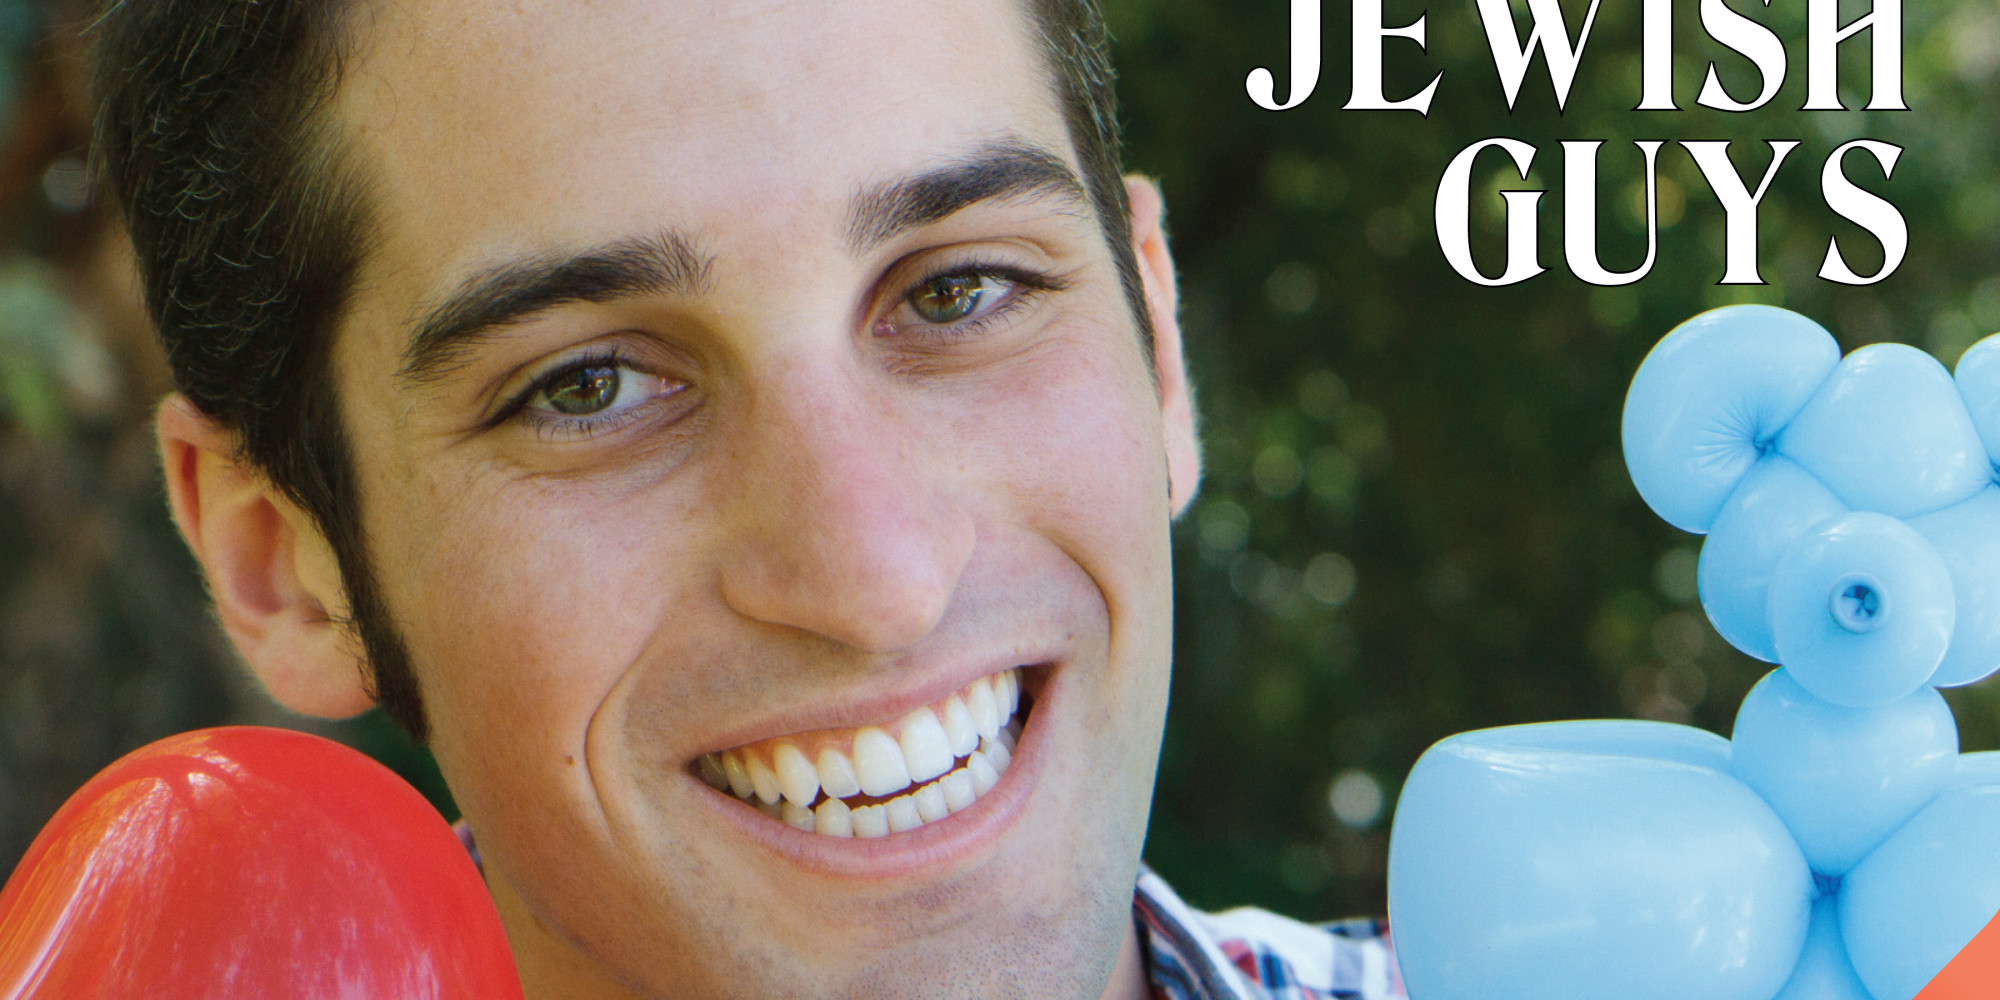 jewish single men in sumerco Latin jewish dating - find latin jewish singles if you are looking for latin jewish singles you may find your match - here and now this free latin jewish dating site provides you with all those features which make searching and browsing as easy as you've always wished for.